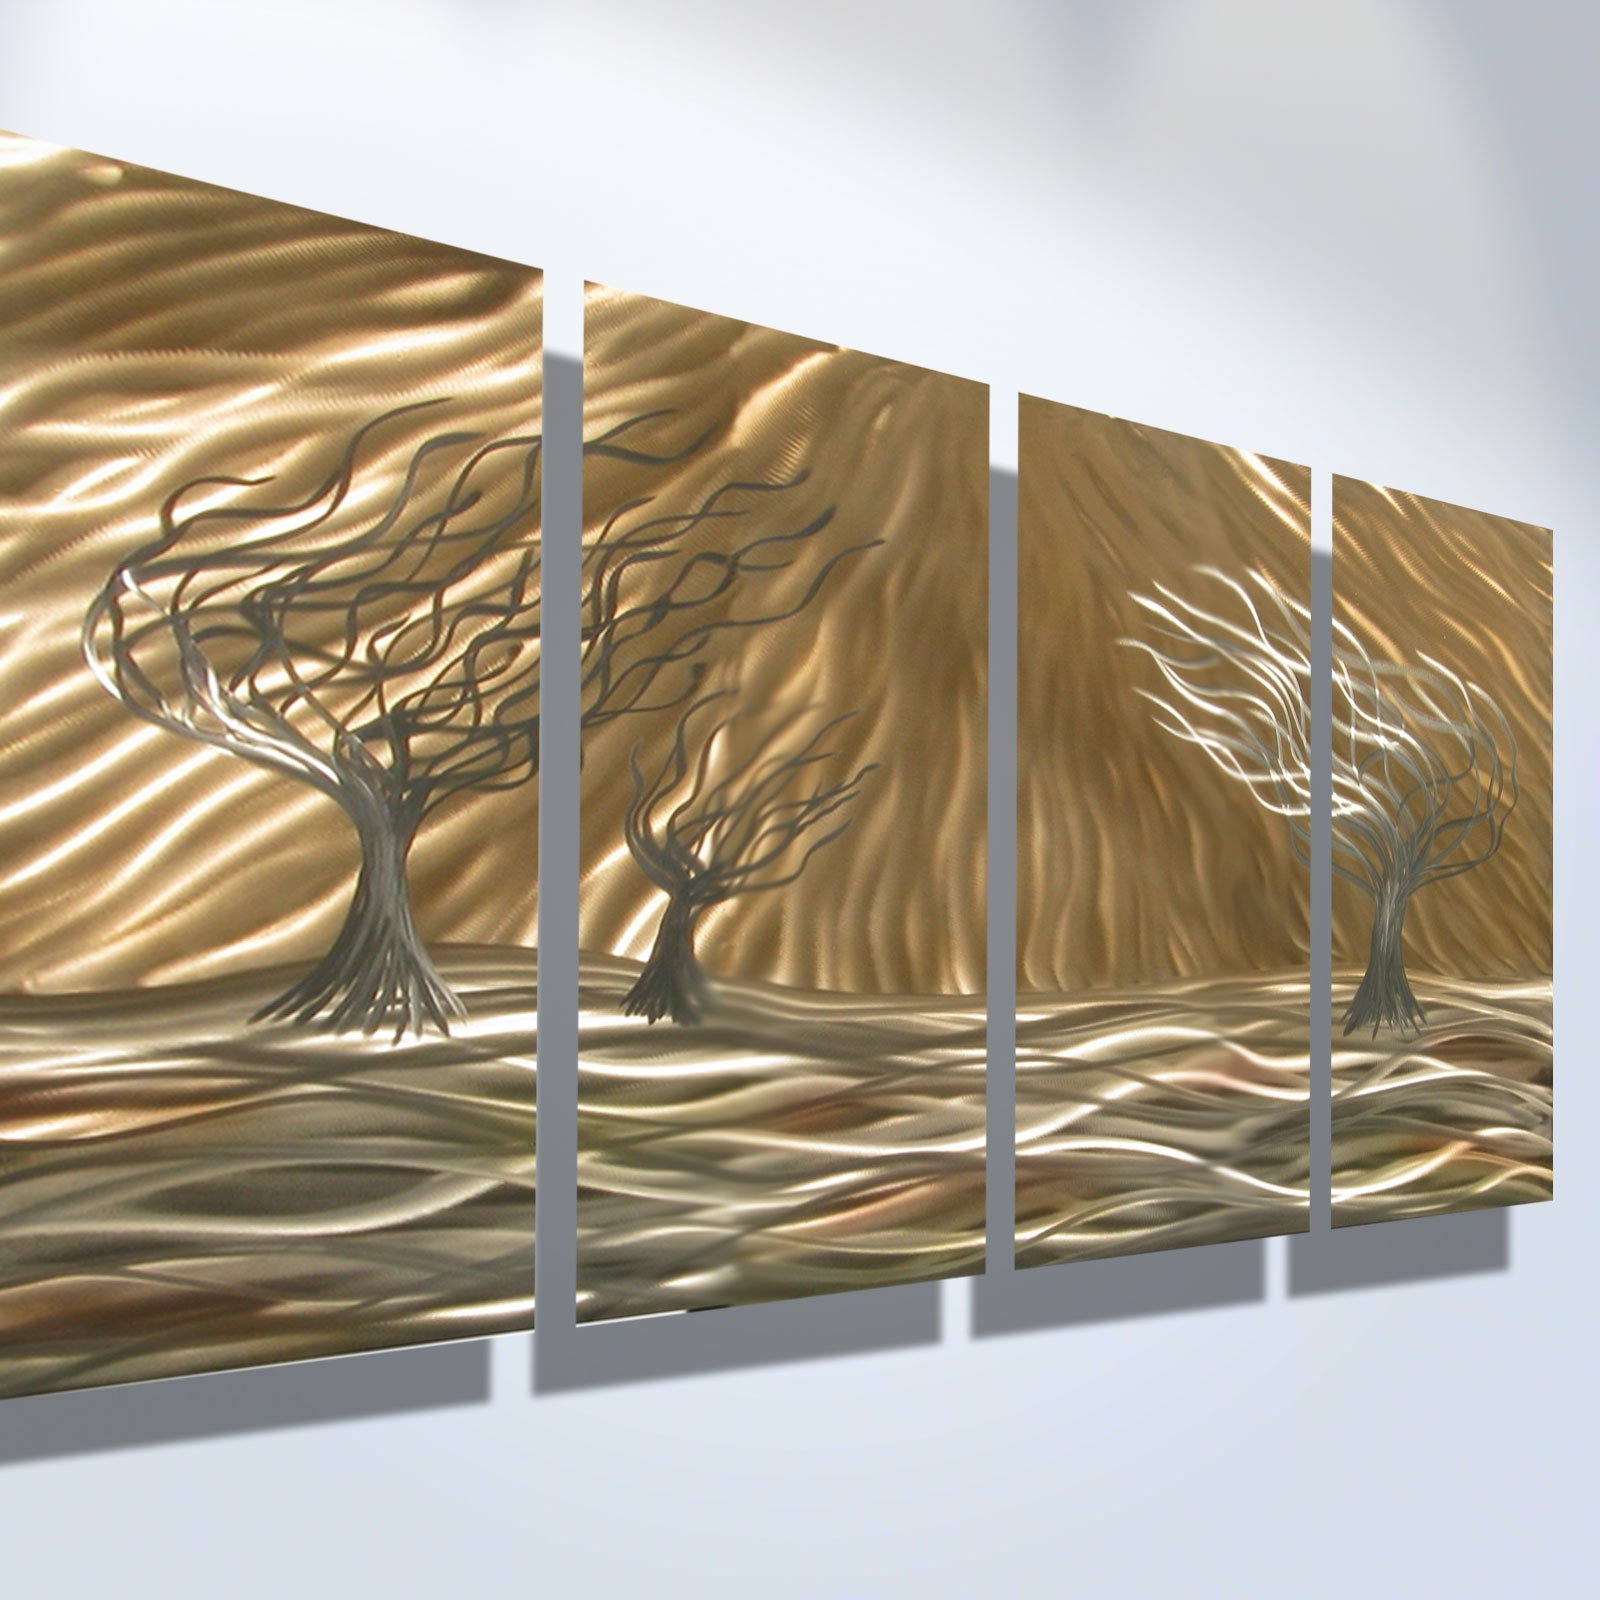 Newest Metal Wall Art Decors Pertaining To 3 Trees 4 Panel – Abstract Metal Wall Art Contemporary Modern Decor (View 10 of 15)